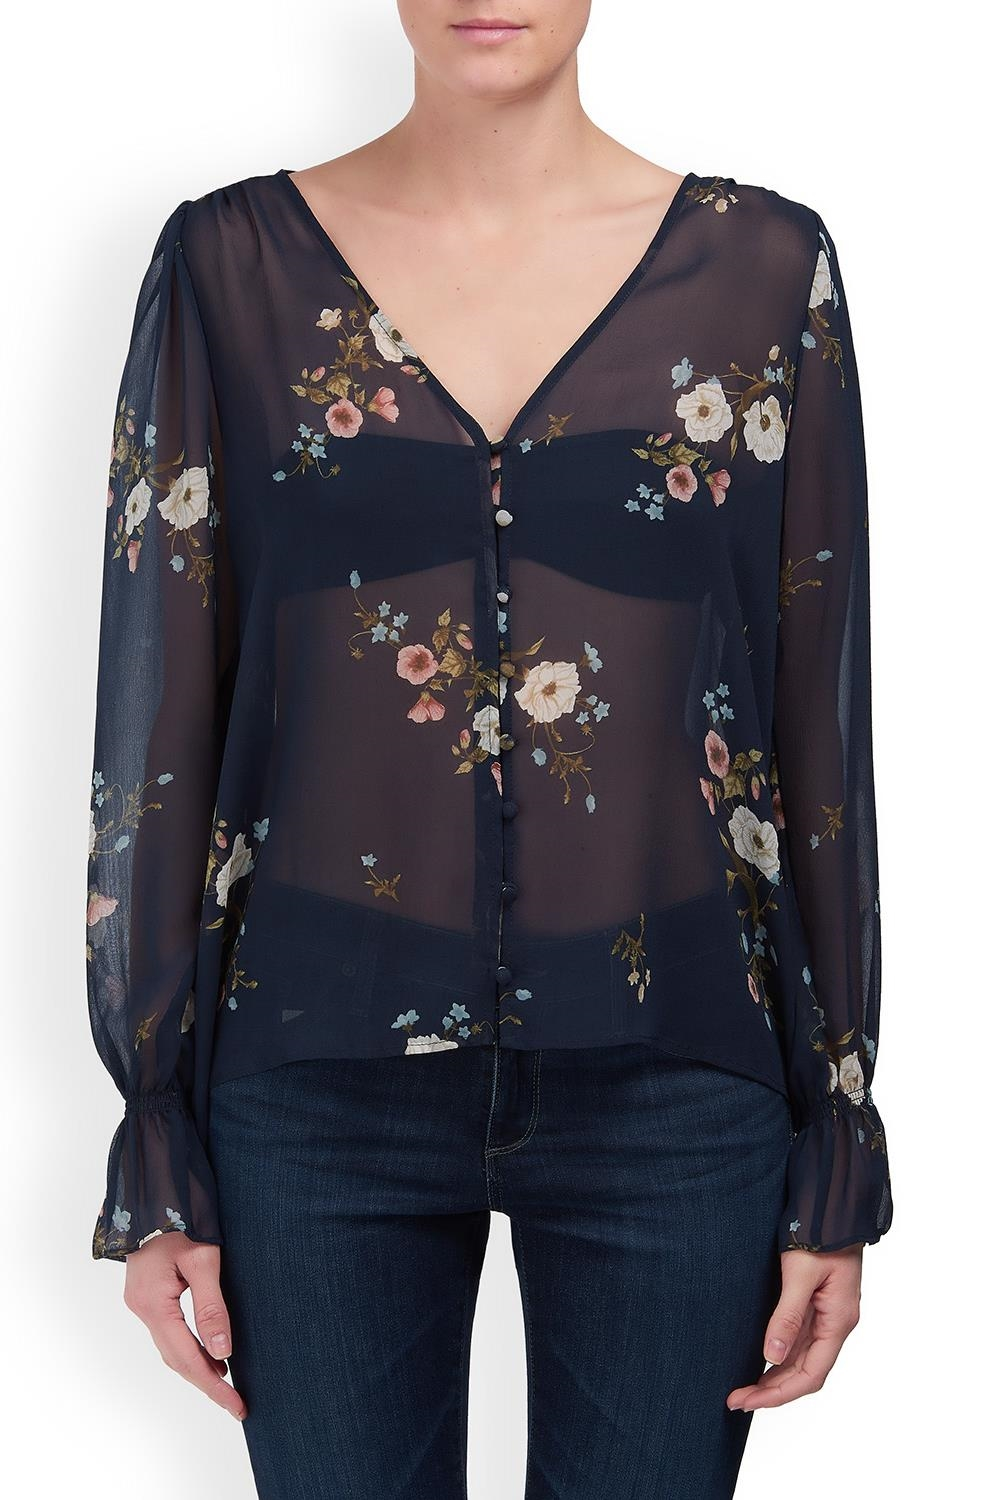 dbe152a51c12 Joie. Bolona C Blouse in Midnight Floral. Was£275.00Now£95.00. 1 / 4